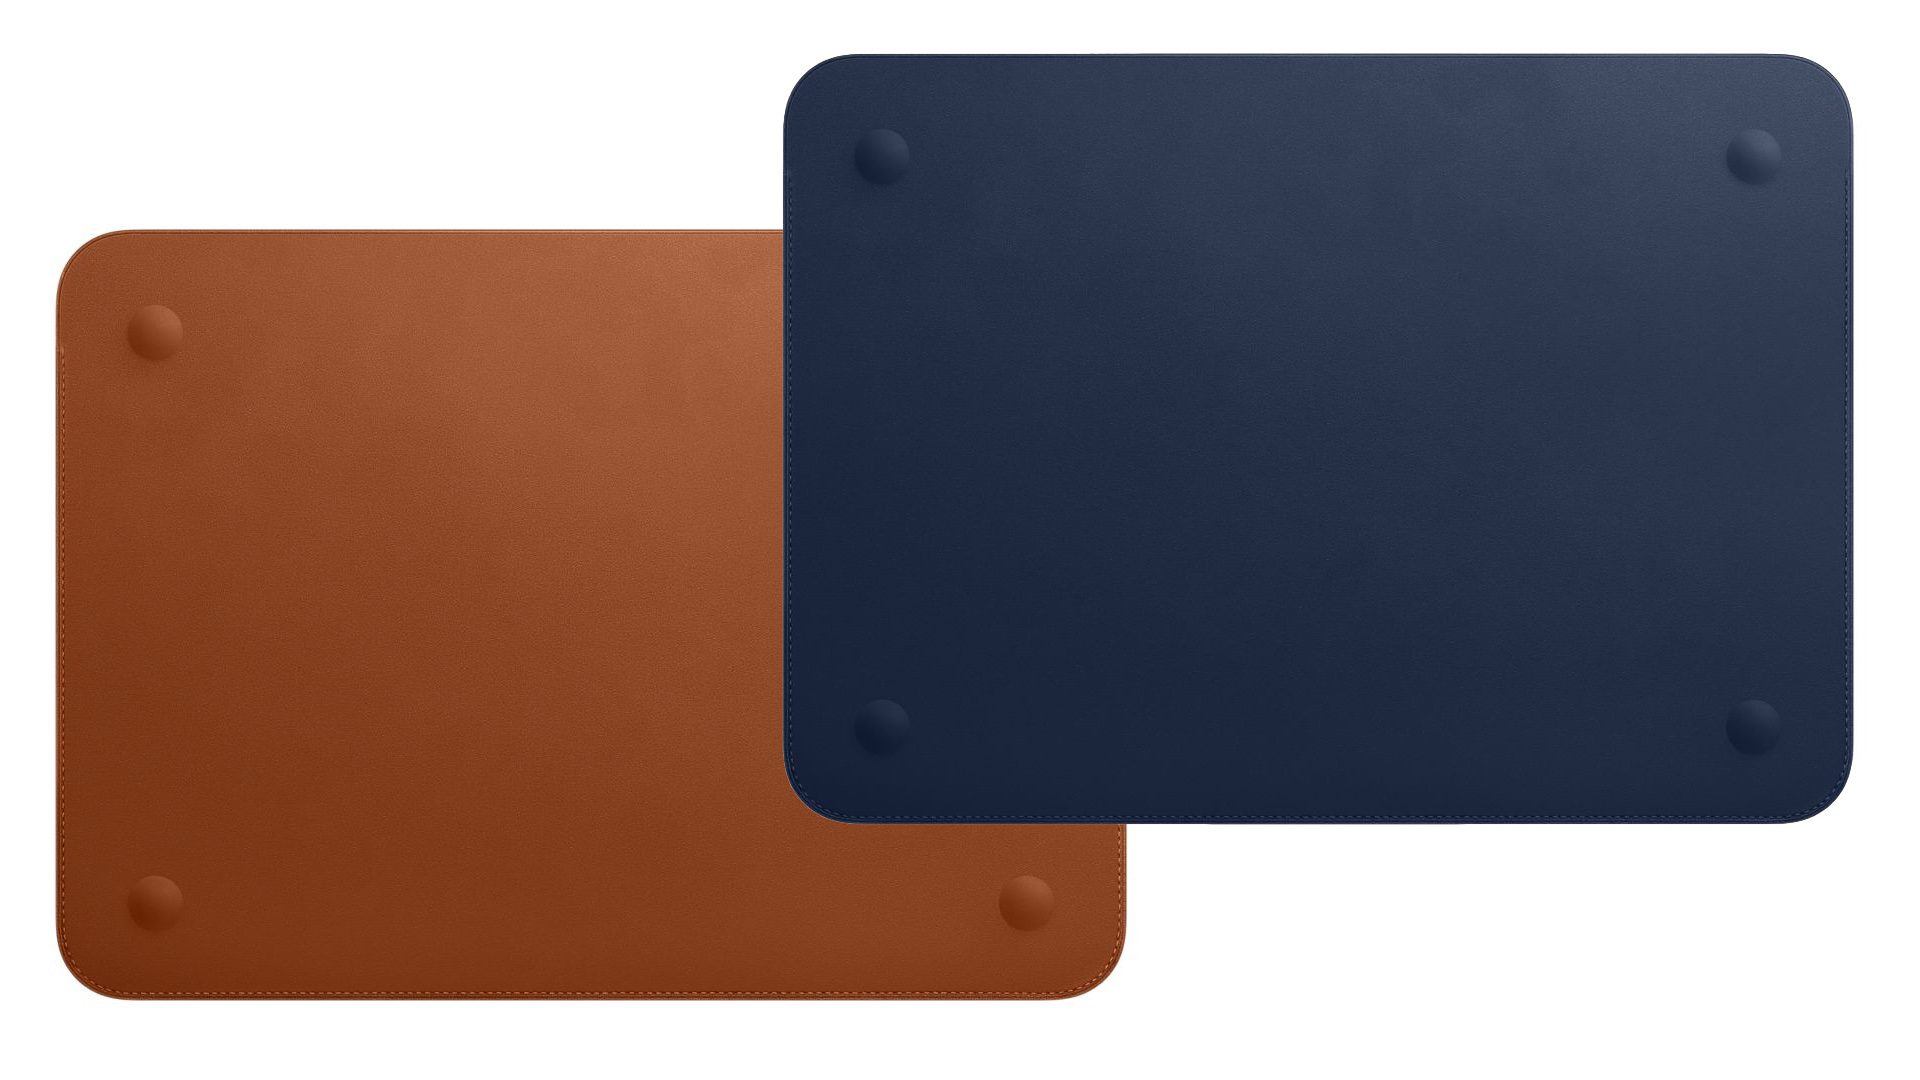 reputable site 7d67a 3eb5b Apple launches new 12-inch MacBook Leather Sleeve - 9to5Mac